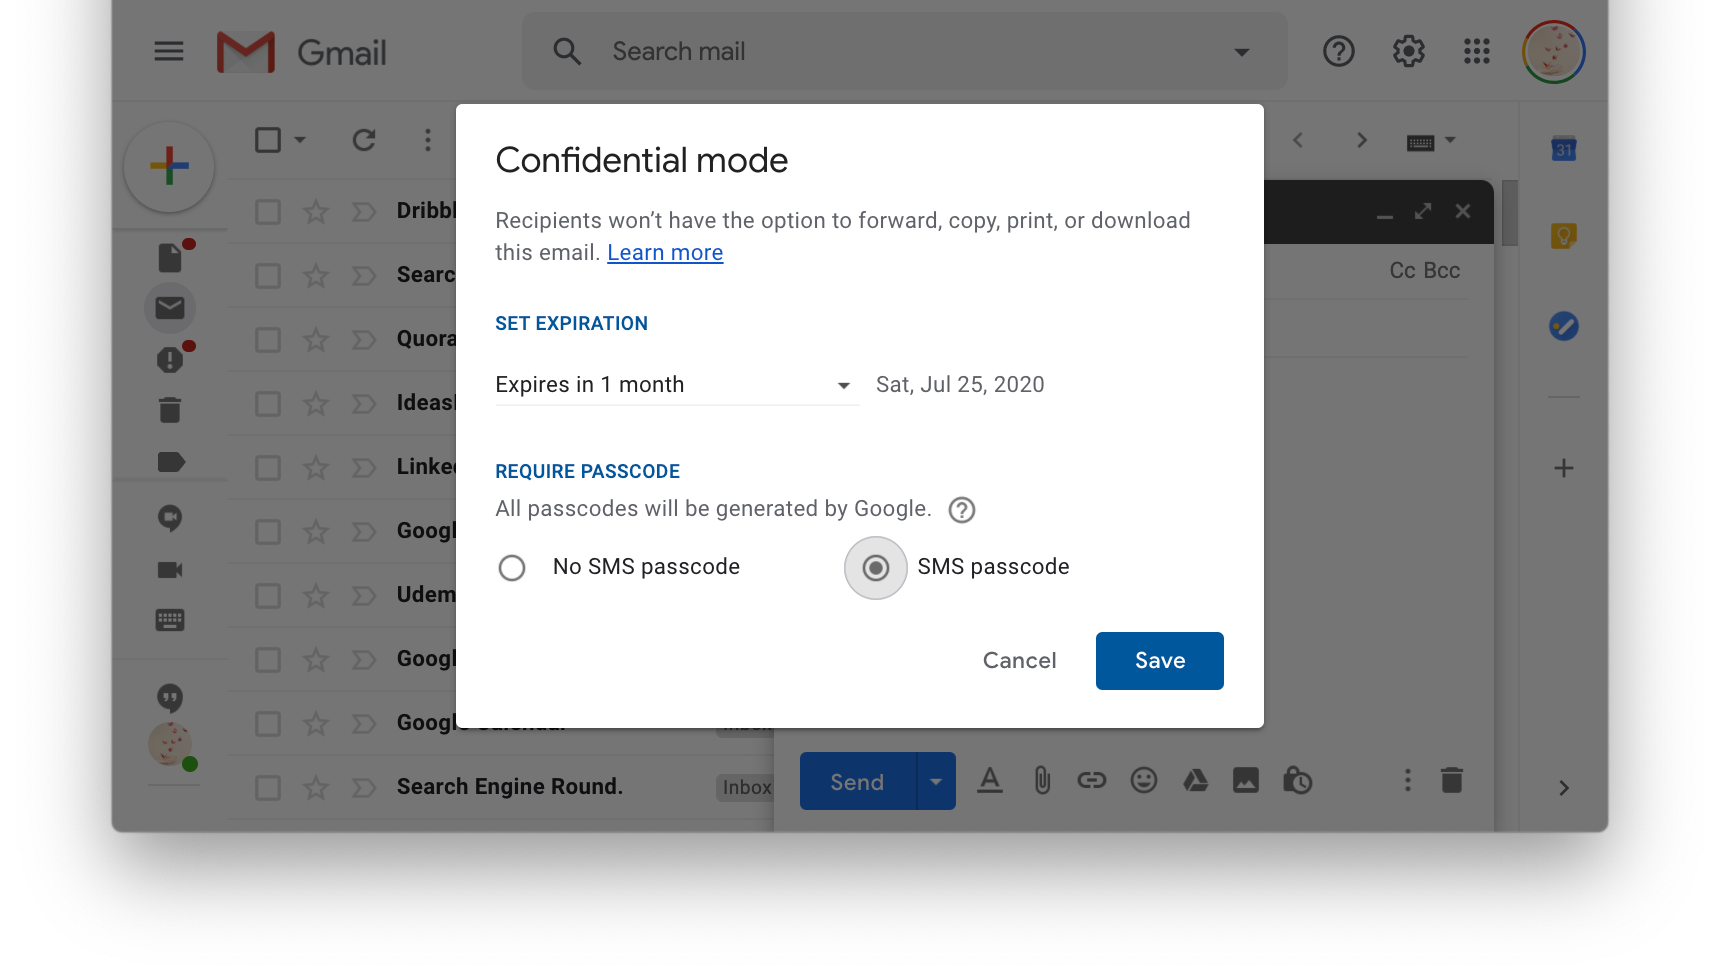 Gmail's confidential mode settings